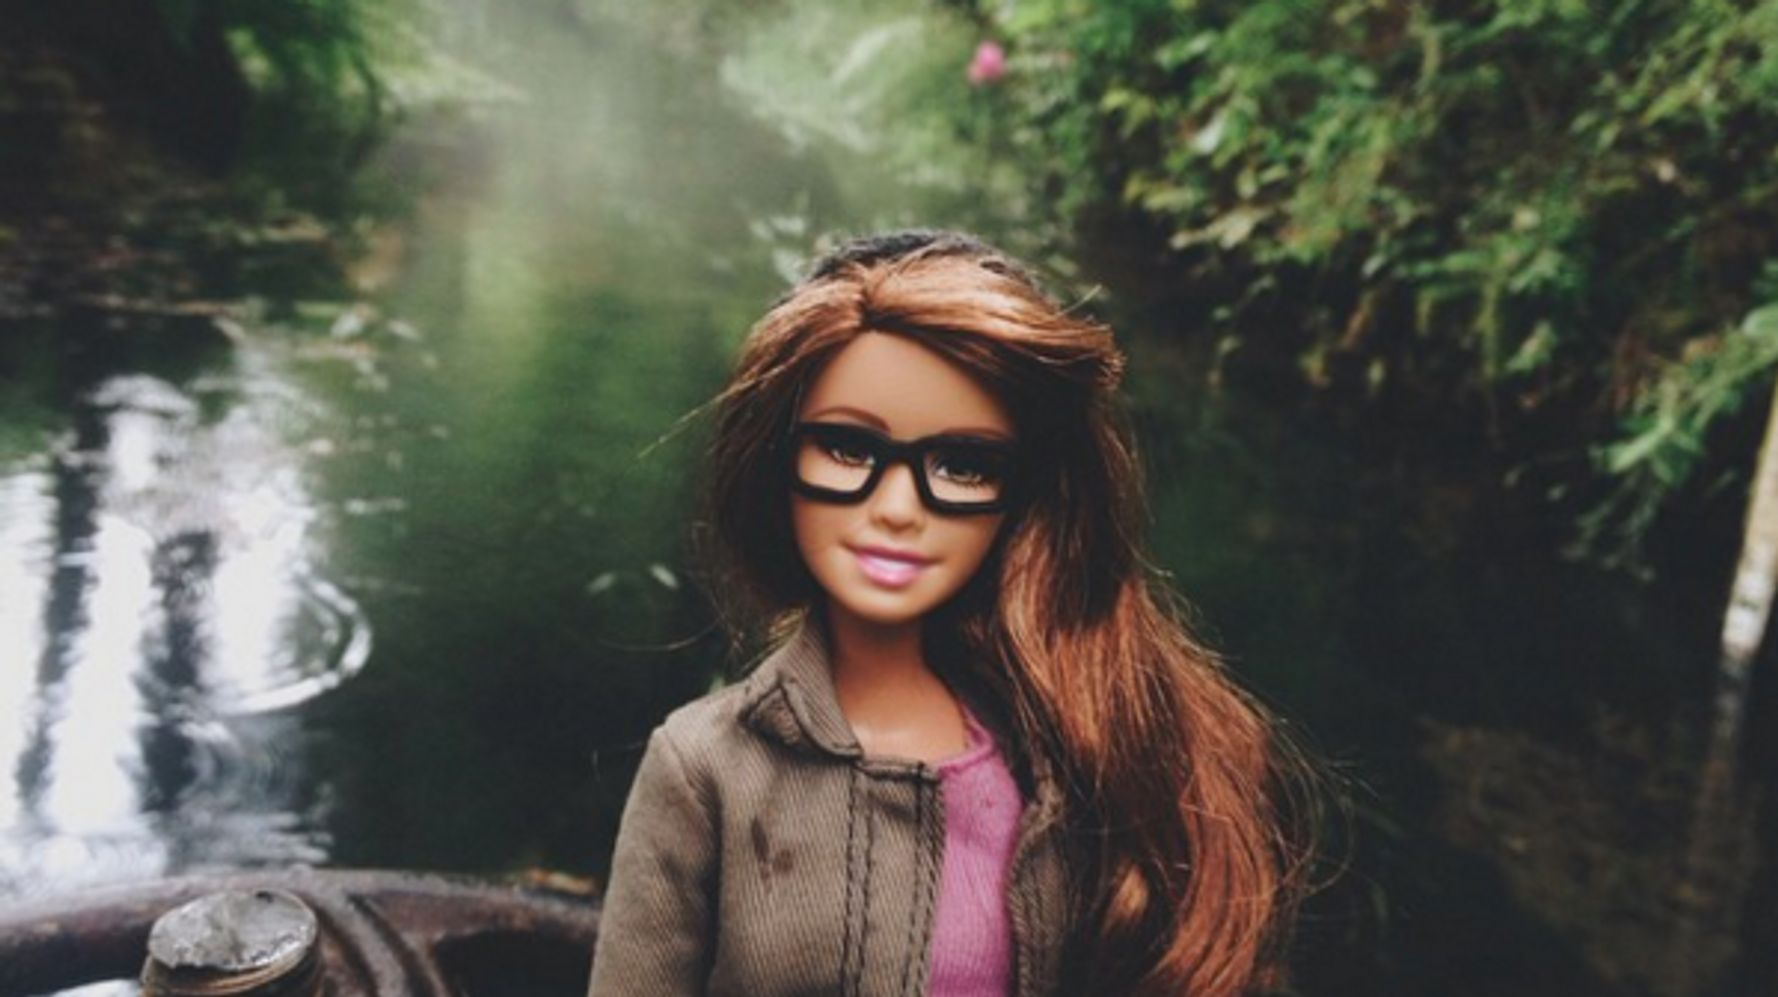 Model And Instagram Celebrity, Hipster Barbie, Dead At 22 Weeks